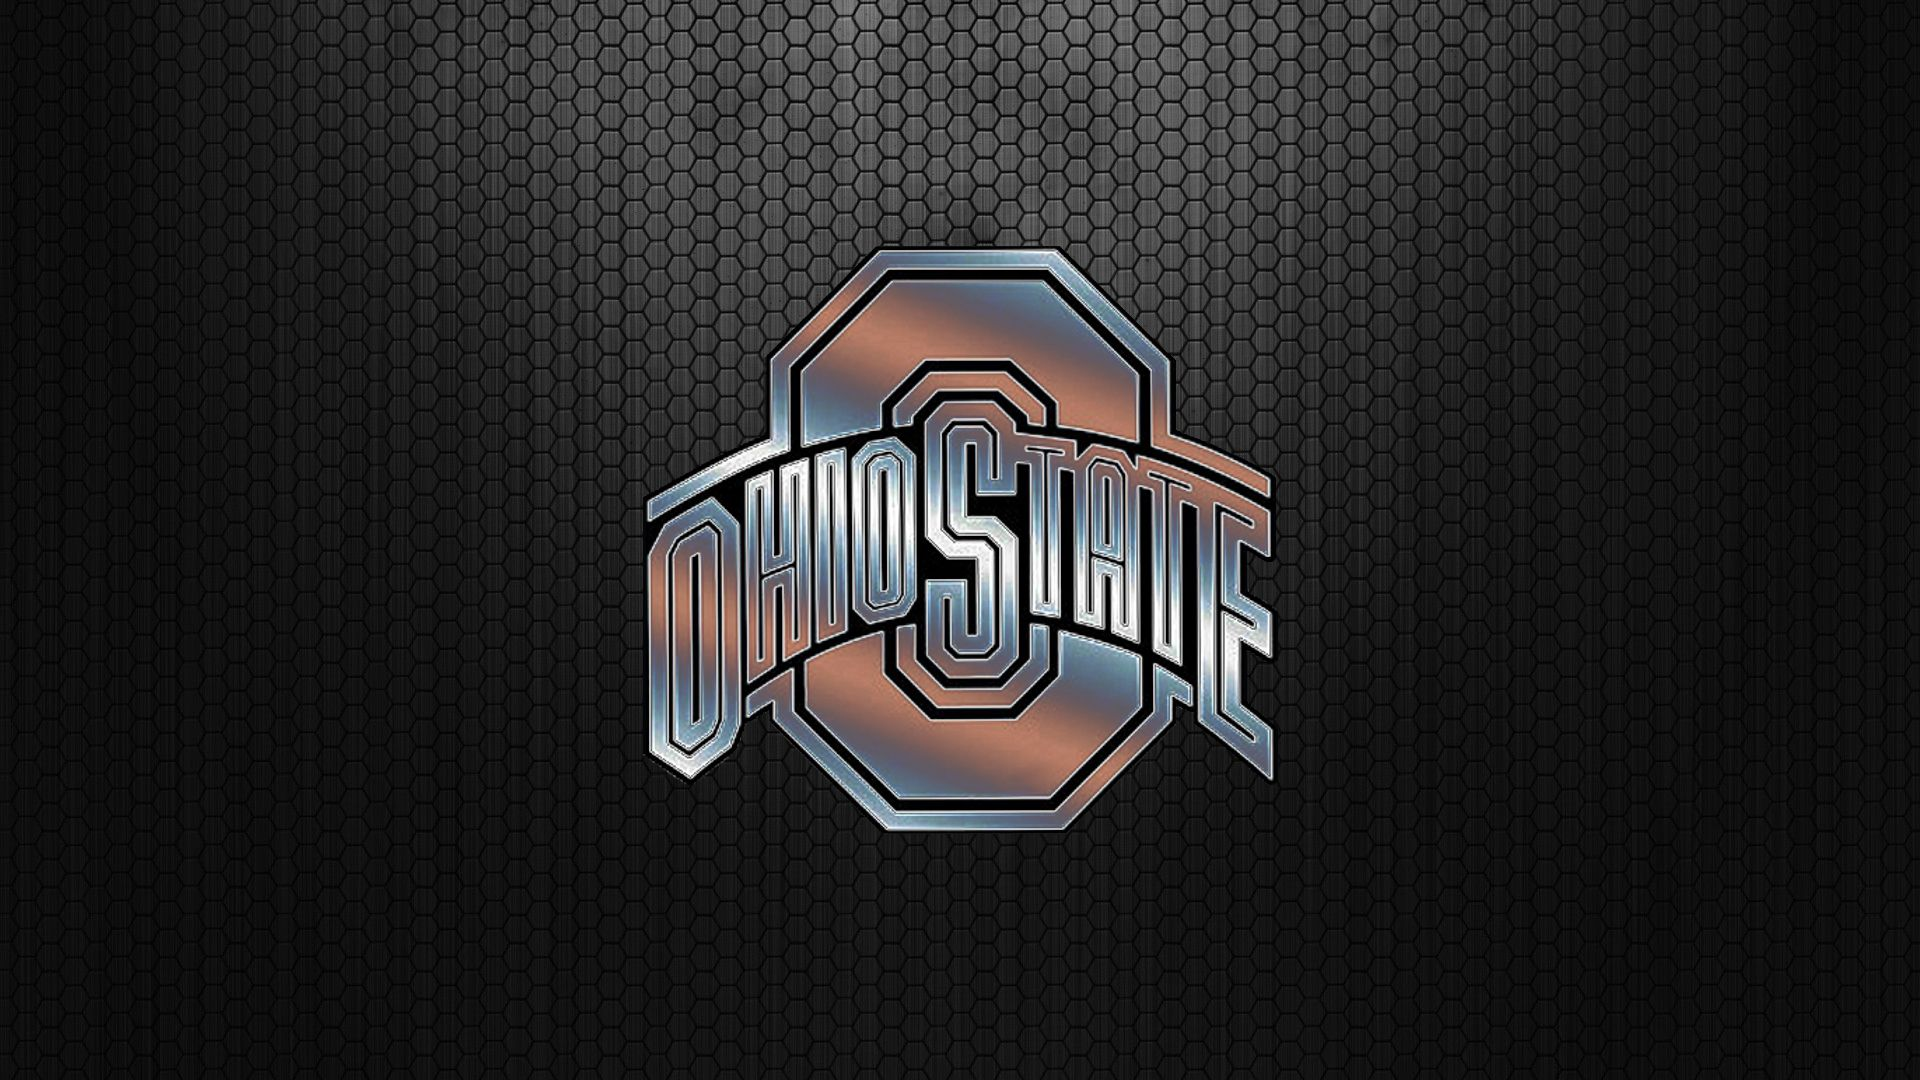 Osu Wallpaper 15 Ohio State Wallpaper Ohio State Football Wallpaper Ohio State Football